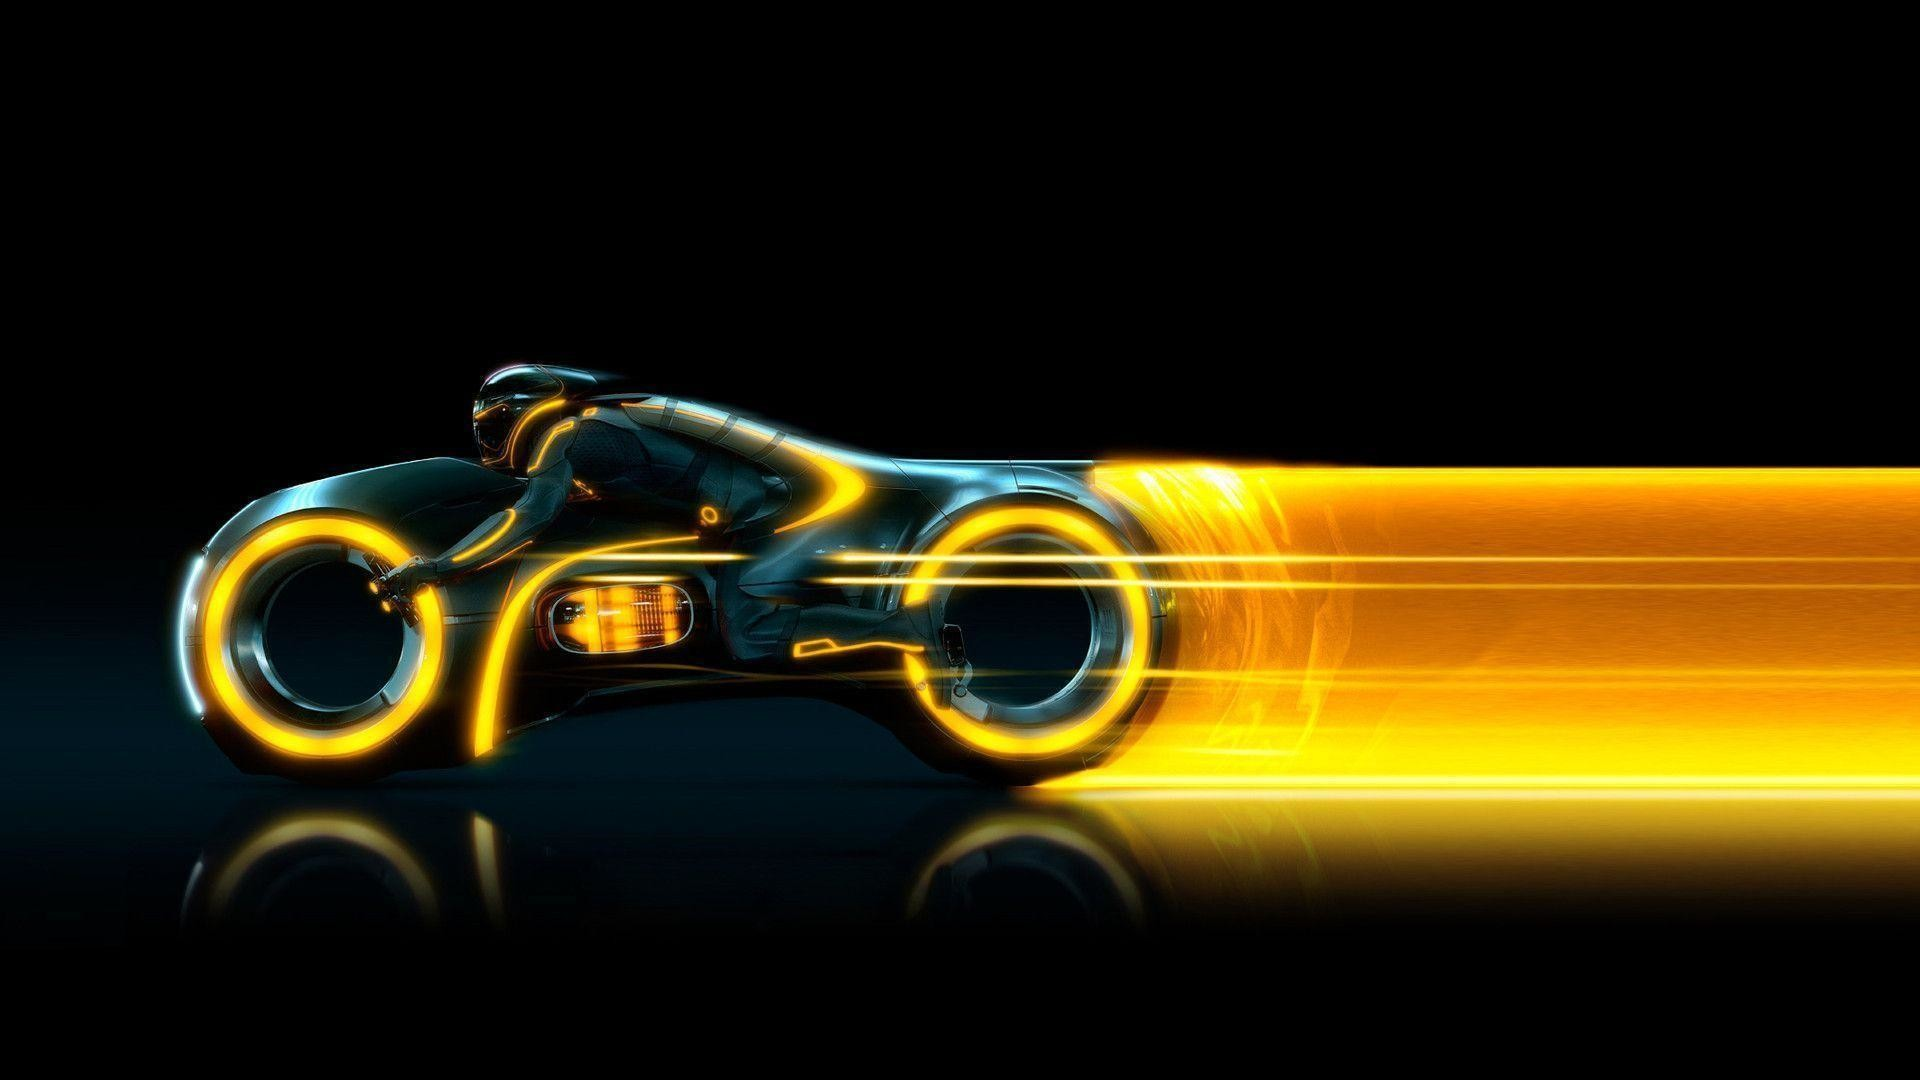 1920x1080 Tron Legacy Hd Cake Ideas and Designs